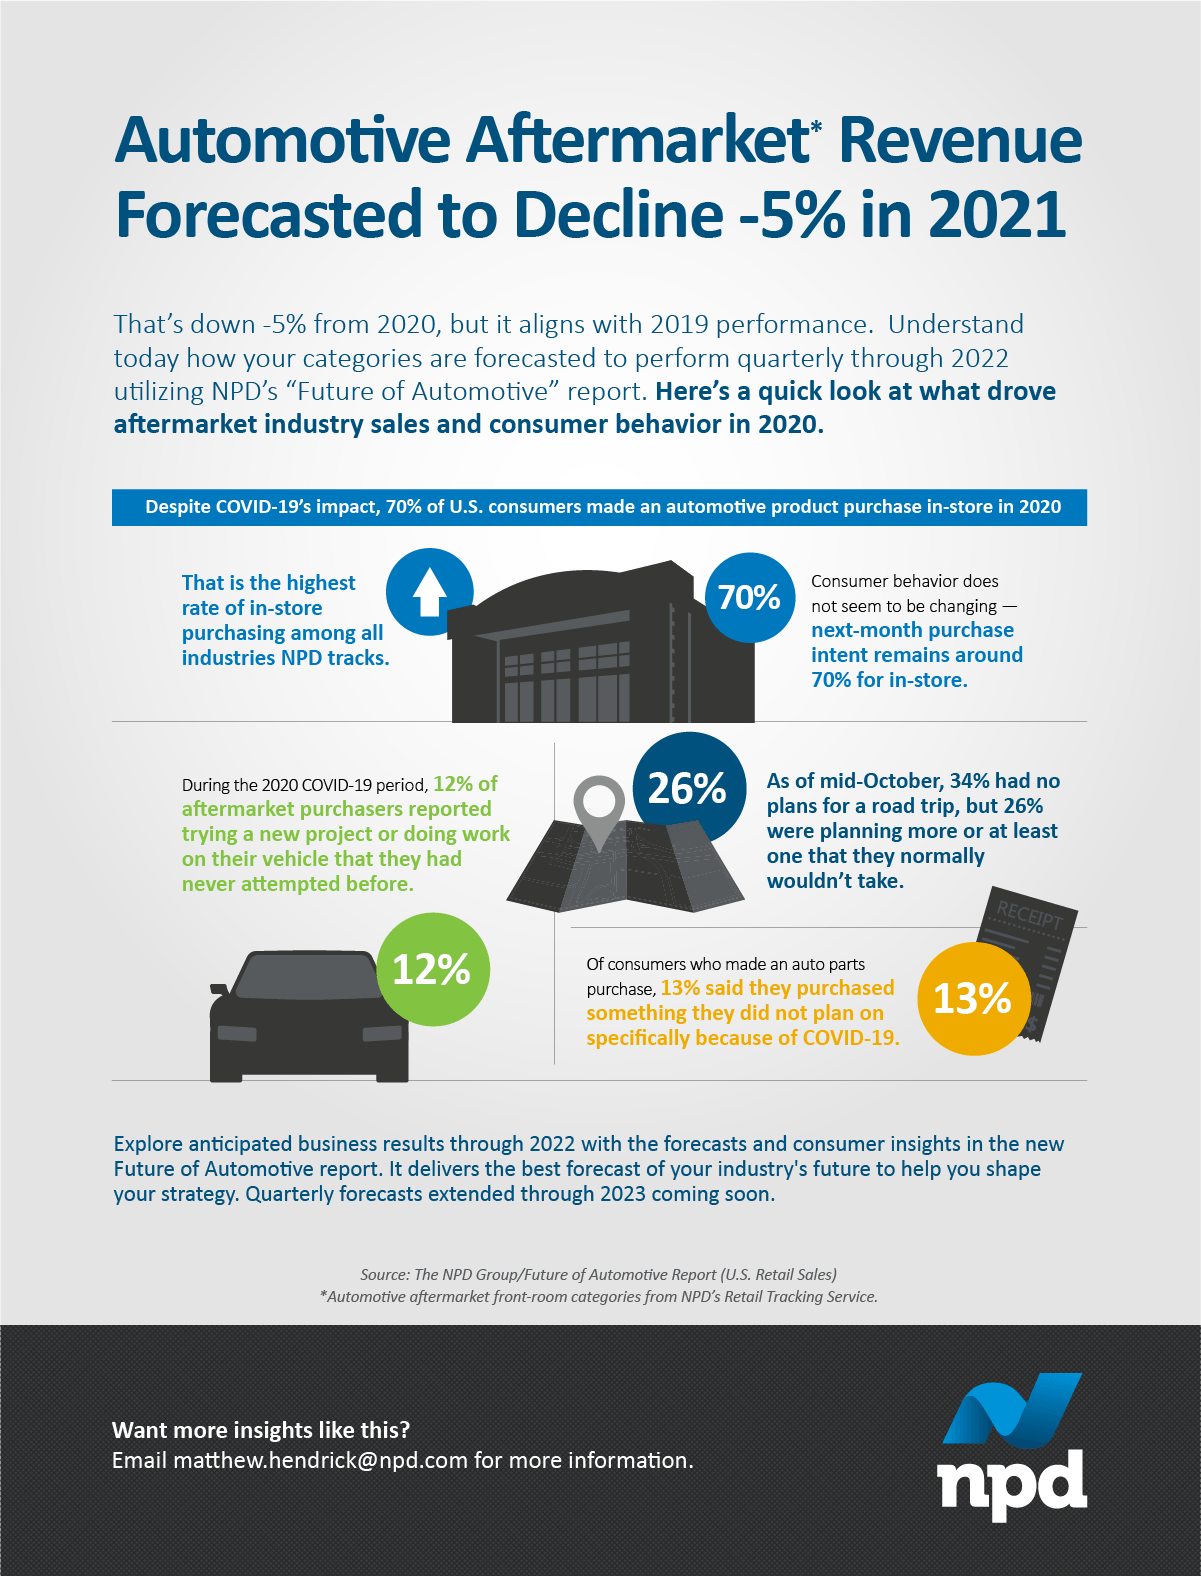 """That's down -5% from 2020, but it aligns with 2019 performance. Understand today how your categories are forecasted to perform quarterly through 2022 utilizing NPD's """"Future of Automotive"""" report. Here's a quick look at what drove aftermarket industry sales and consumer behavior in 2020."""